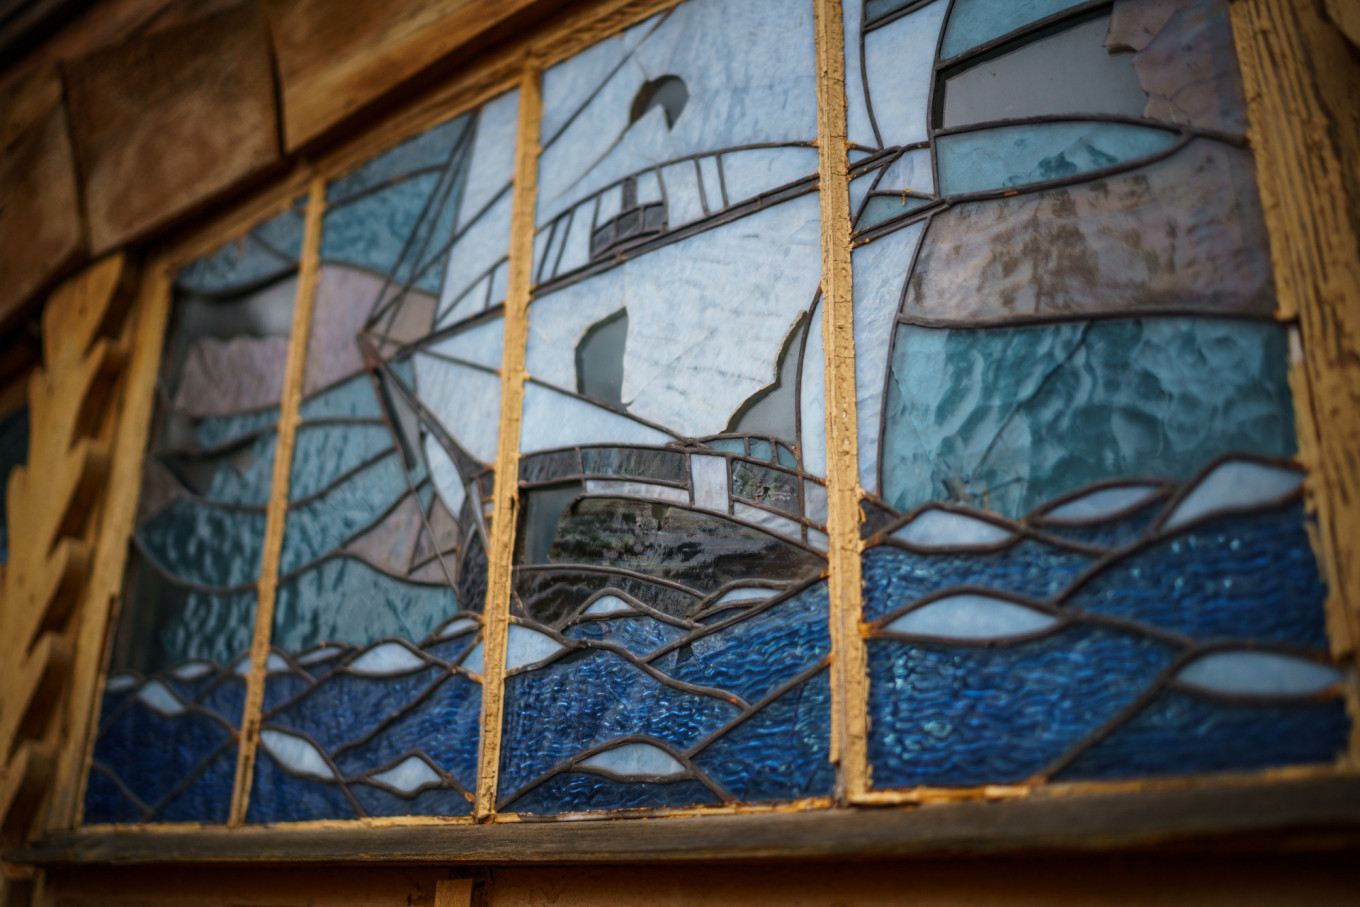 The stained glass will be fully restored. Tom Sawyer Fest